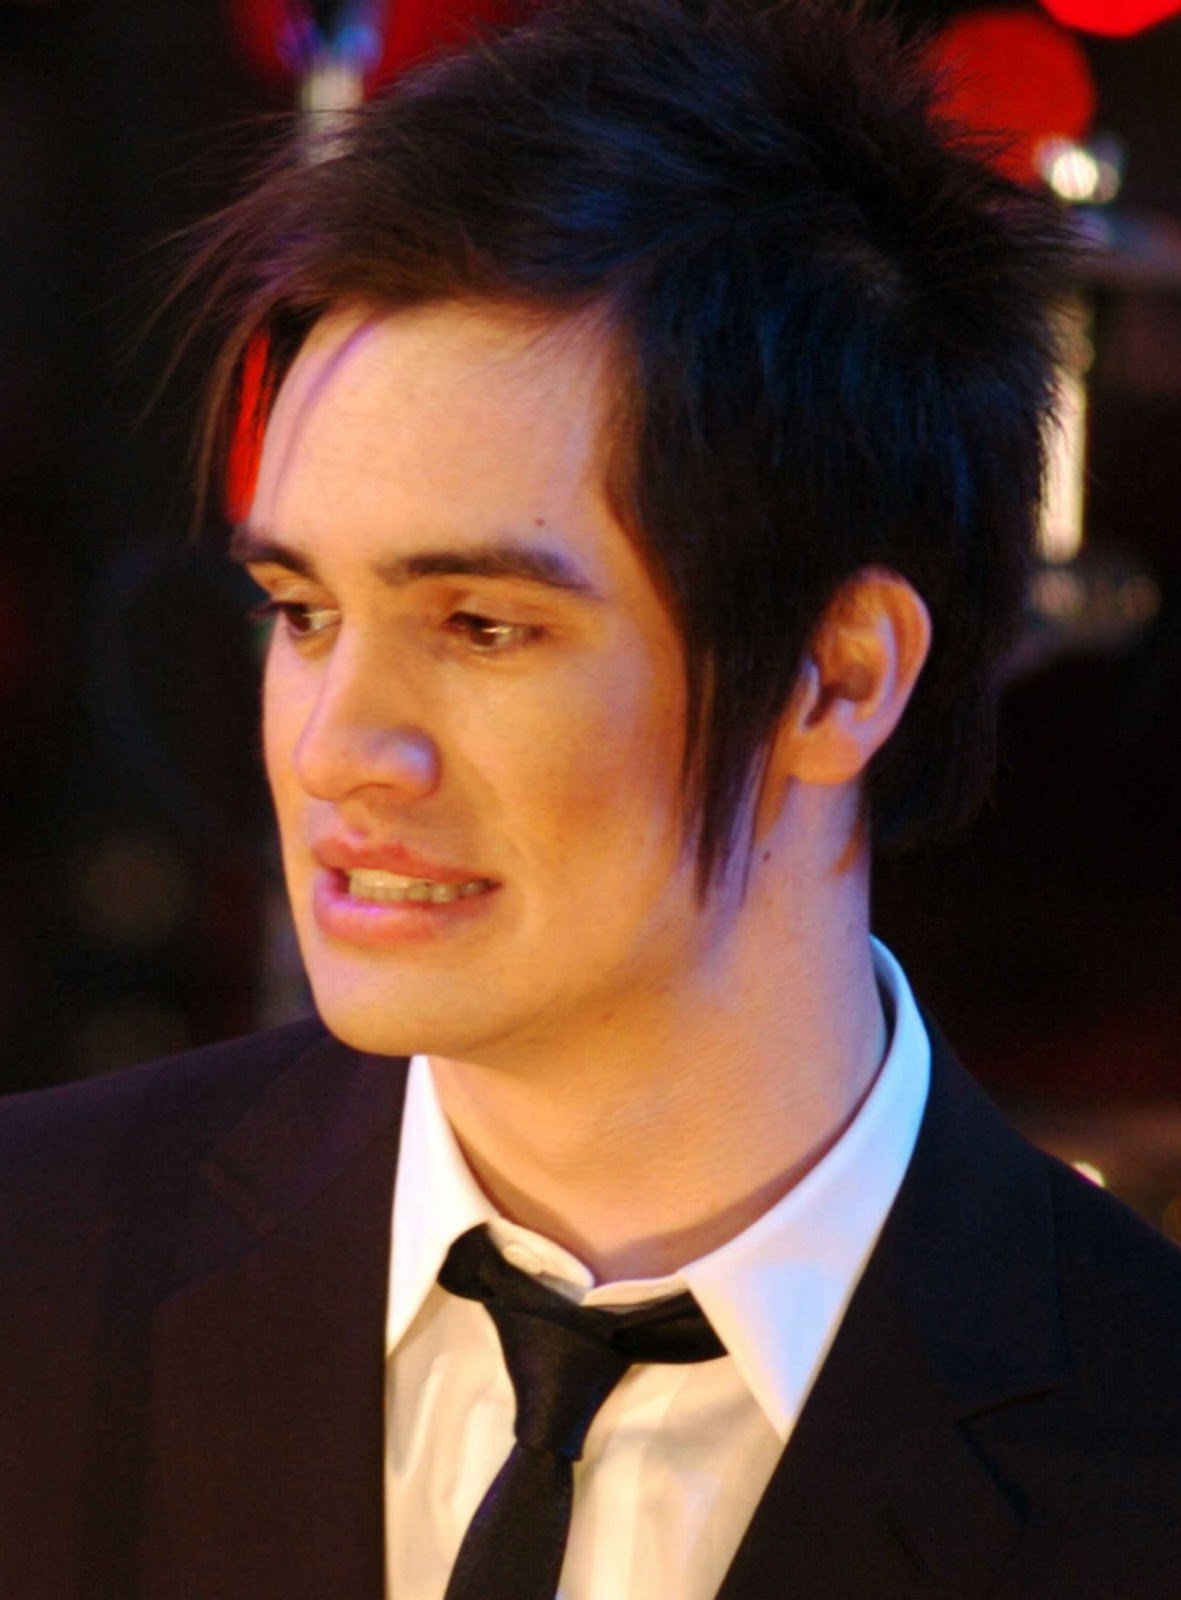 The Best Brendon Urie Hairstyle Men Hairstyles Dwayne The Rock Pictures